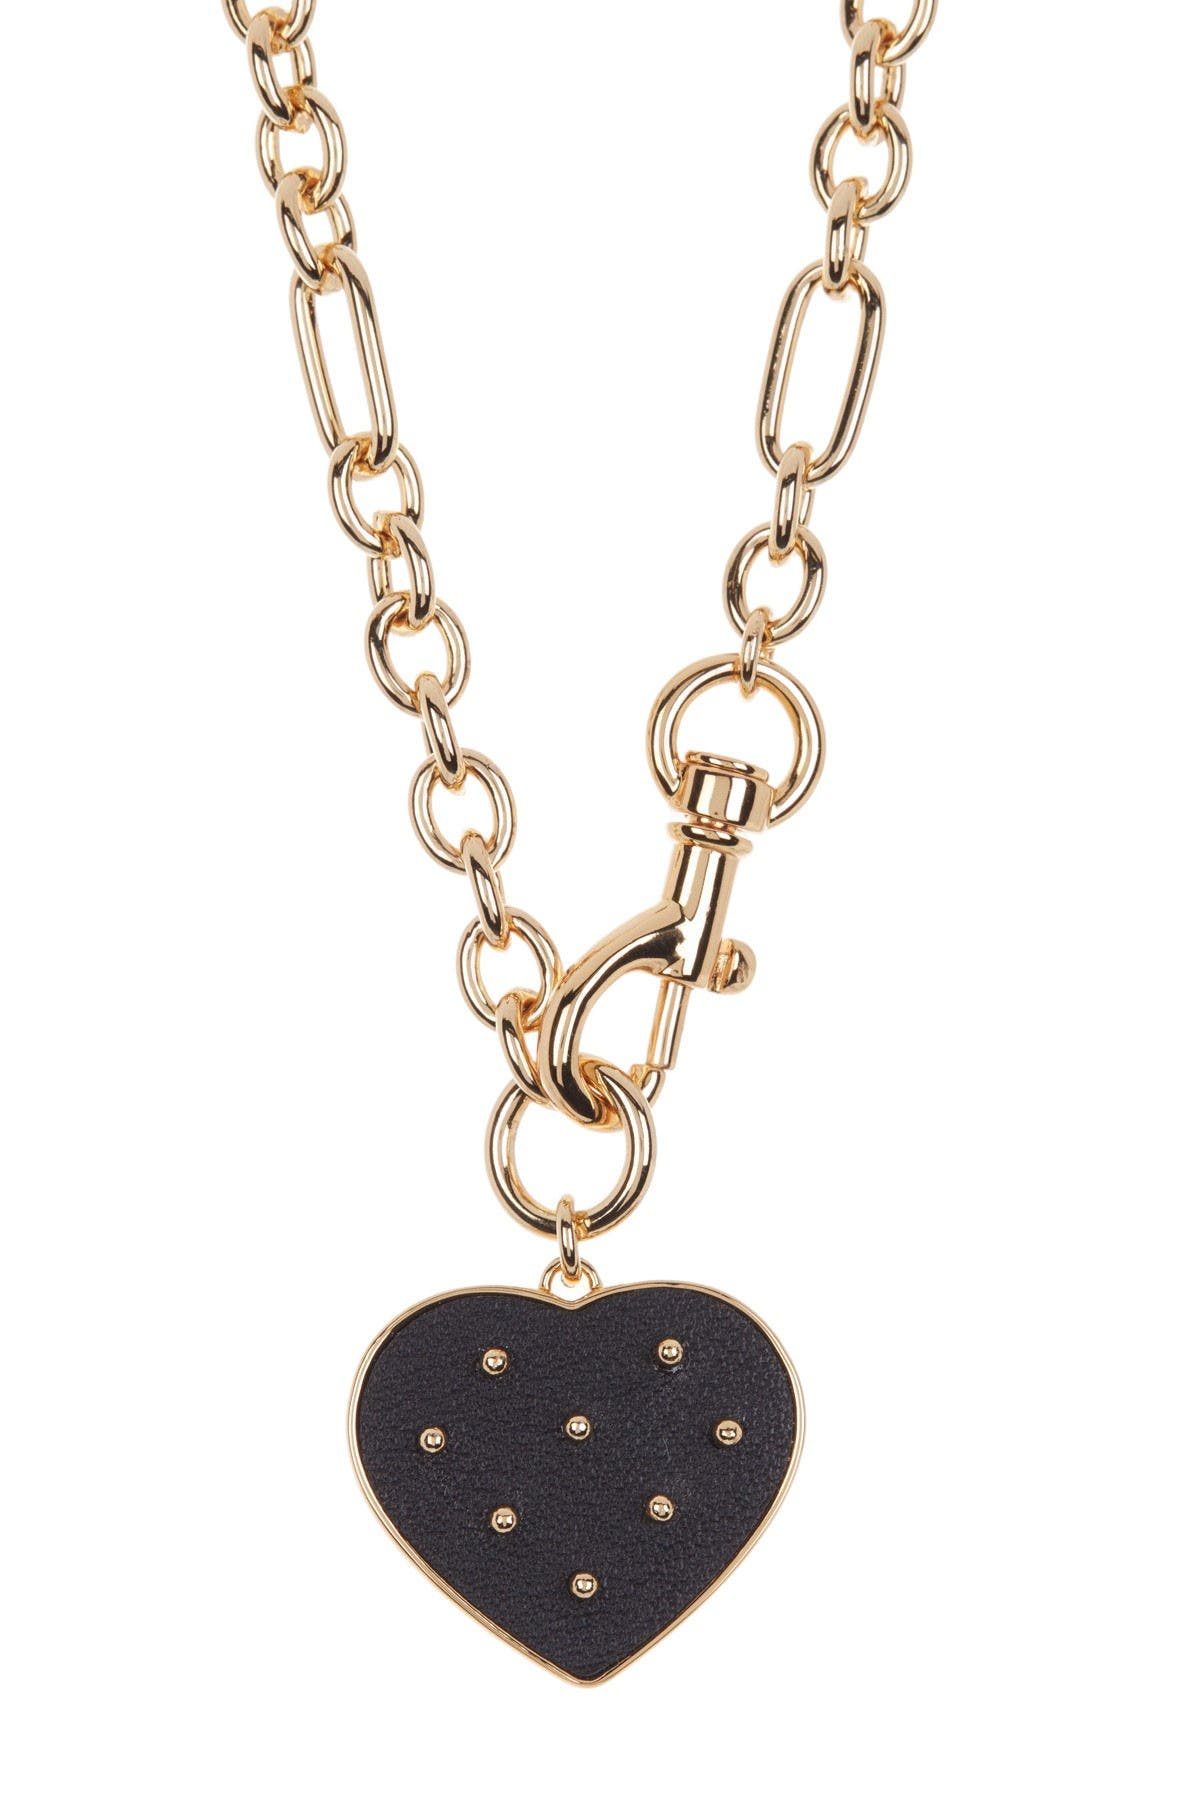 Image of Rebecca Minkoff Studded Leather Heart Pendant Necklace